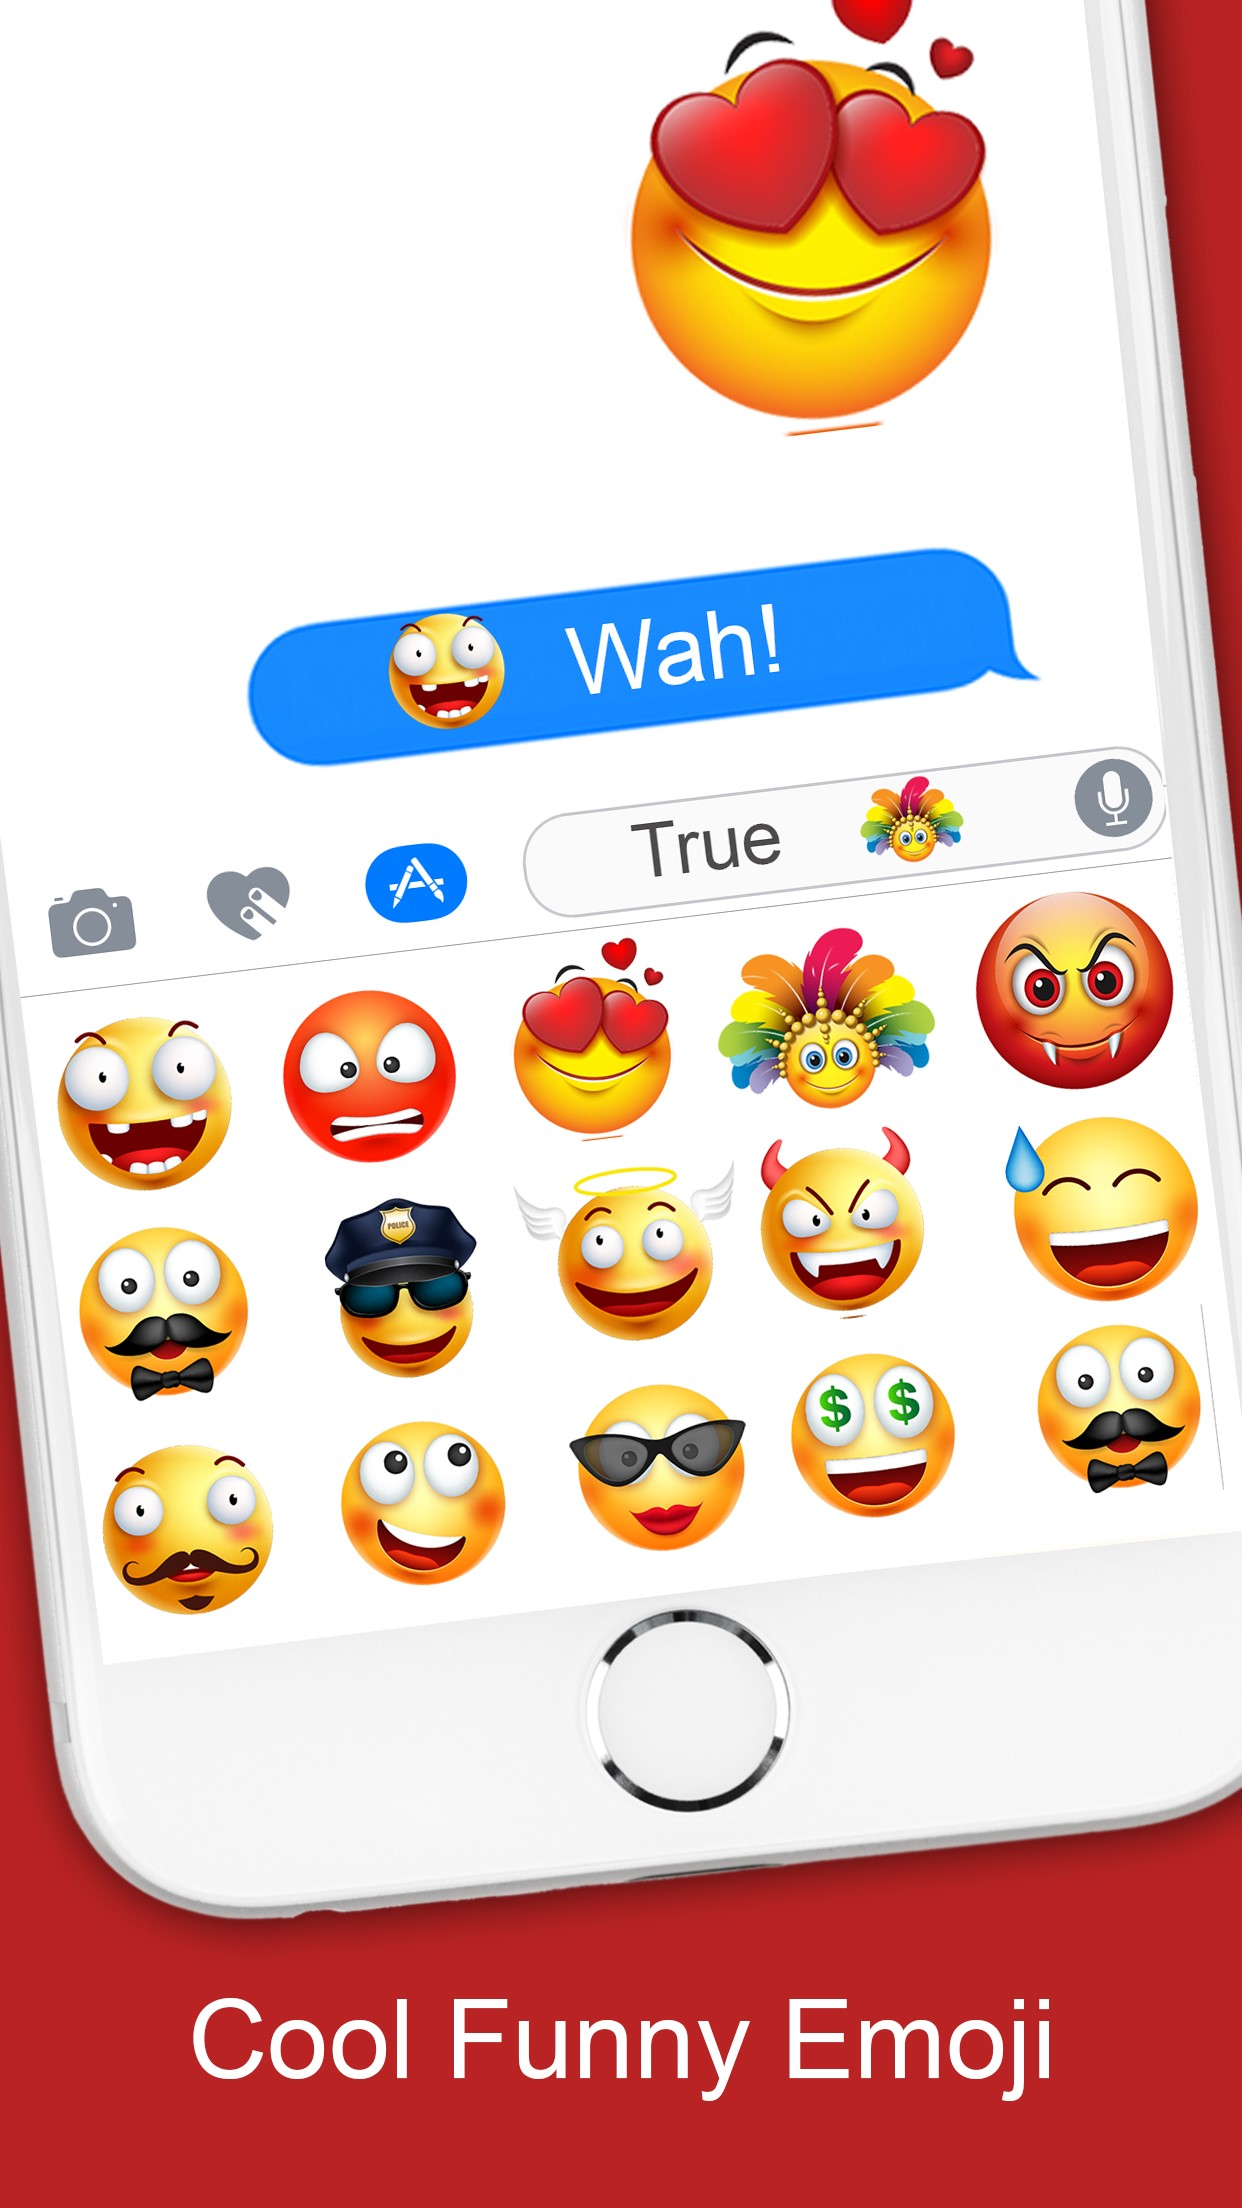 It's possible to update the information on Emoji 3D Stickers or report it  as discontinued, duplicated or spam.